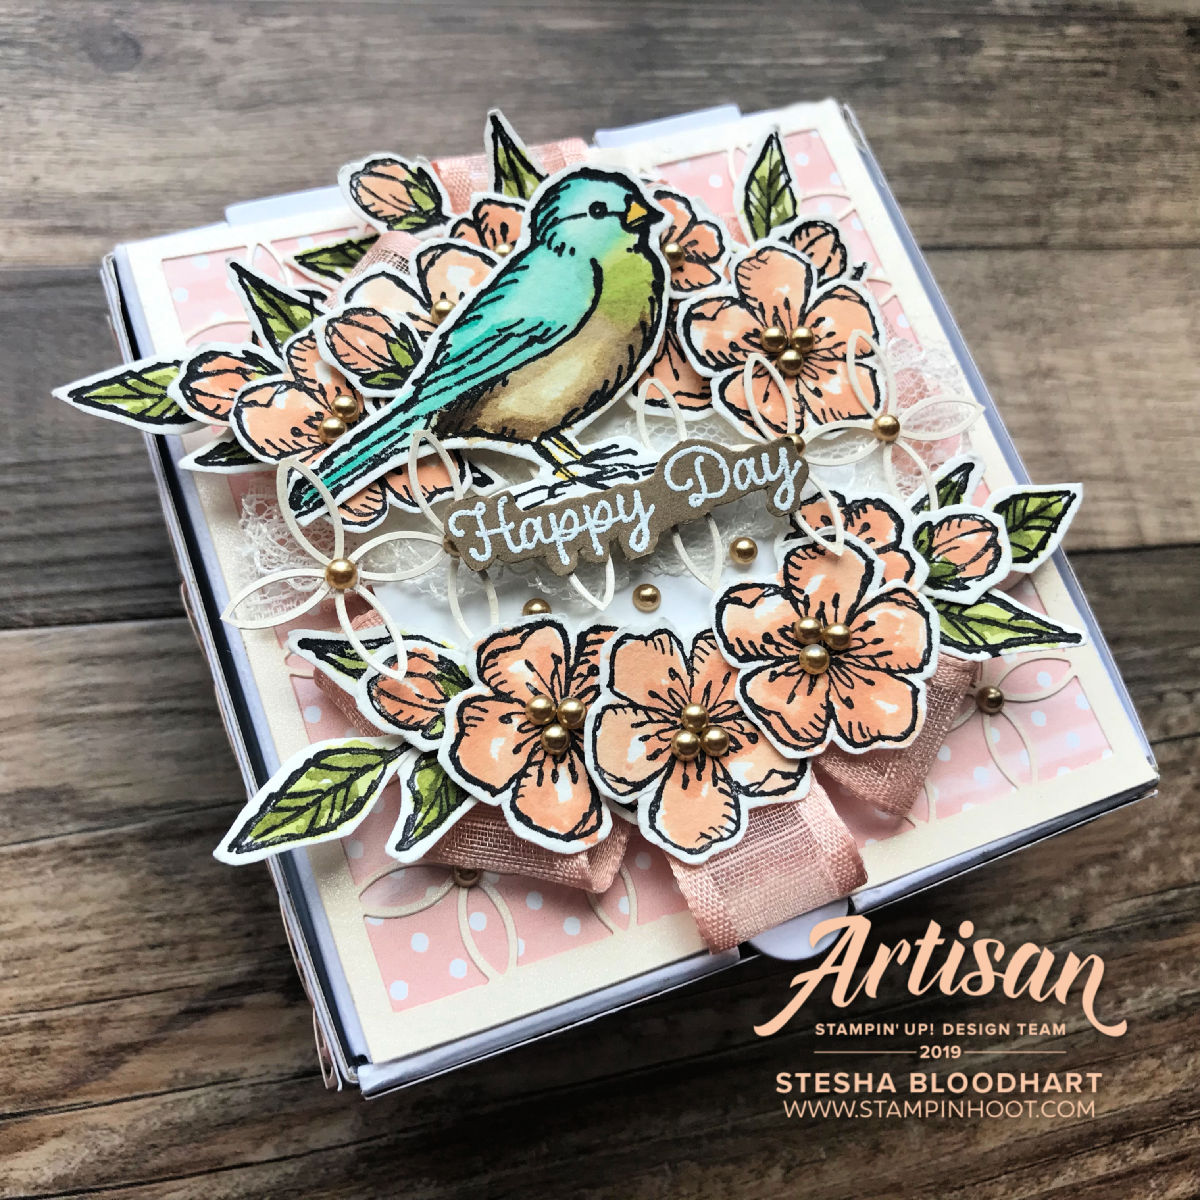 Mini Pizza Gift Box Bird Ballad Suite Trio of Wedding Creations by 2019 Artisan Design Team Member Stesha Bloodhart, Stampin' Hoot for SCT Blog